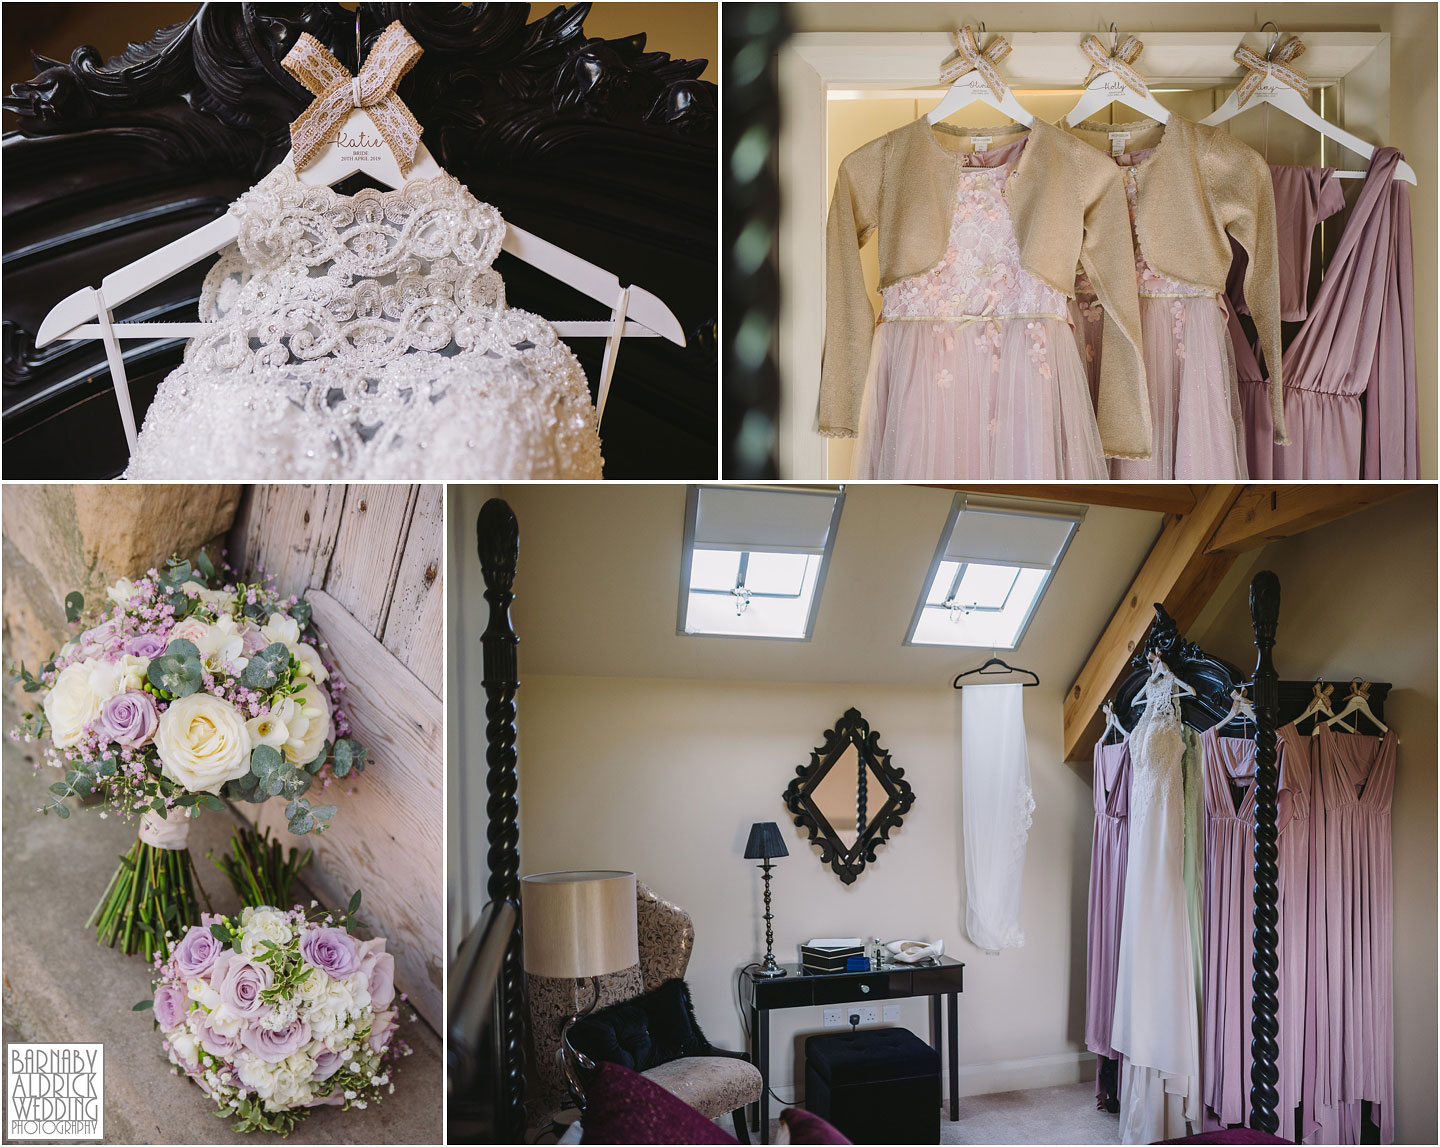 Ronald Joyce wedding gown at Priory Cottages